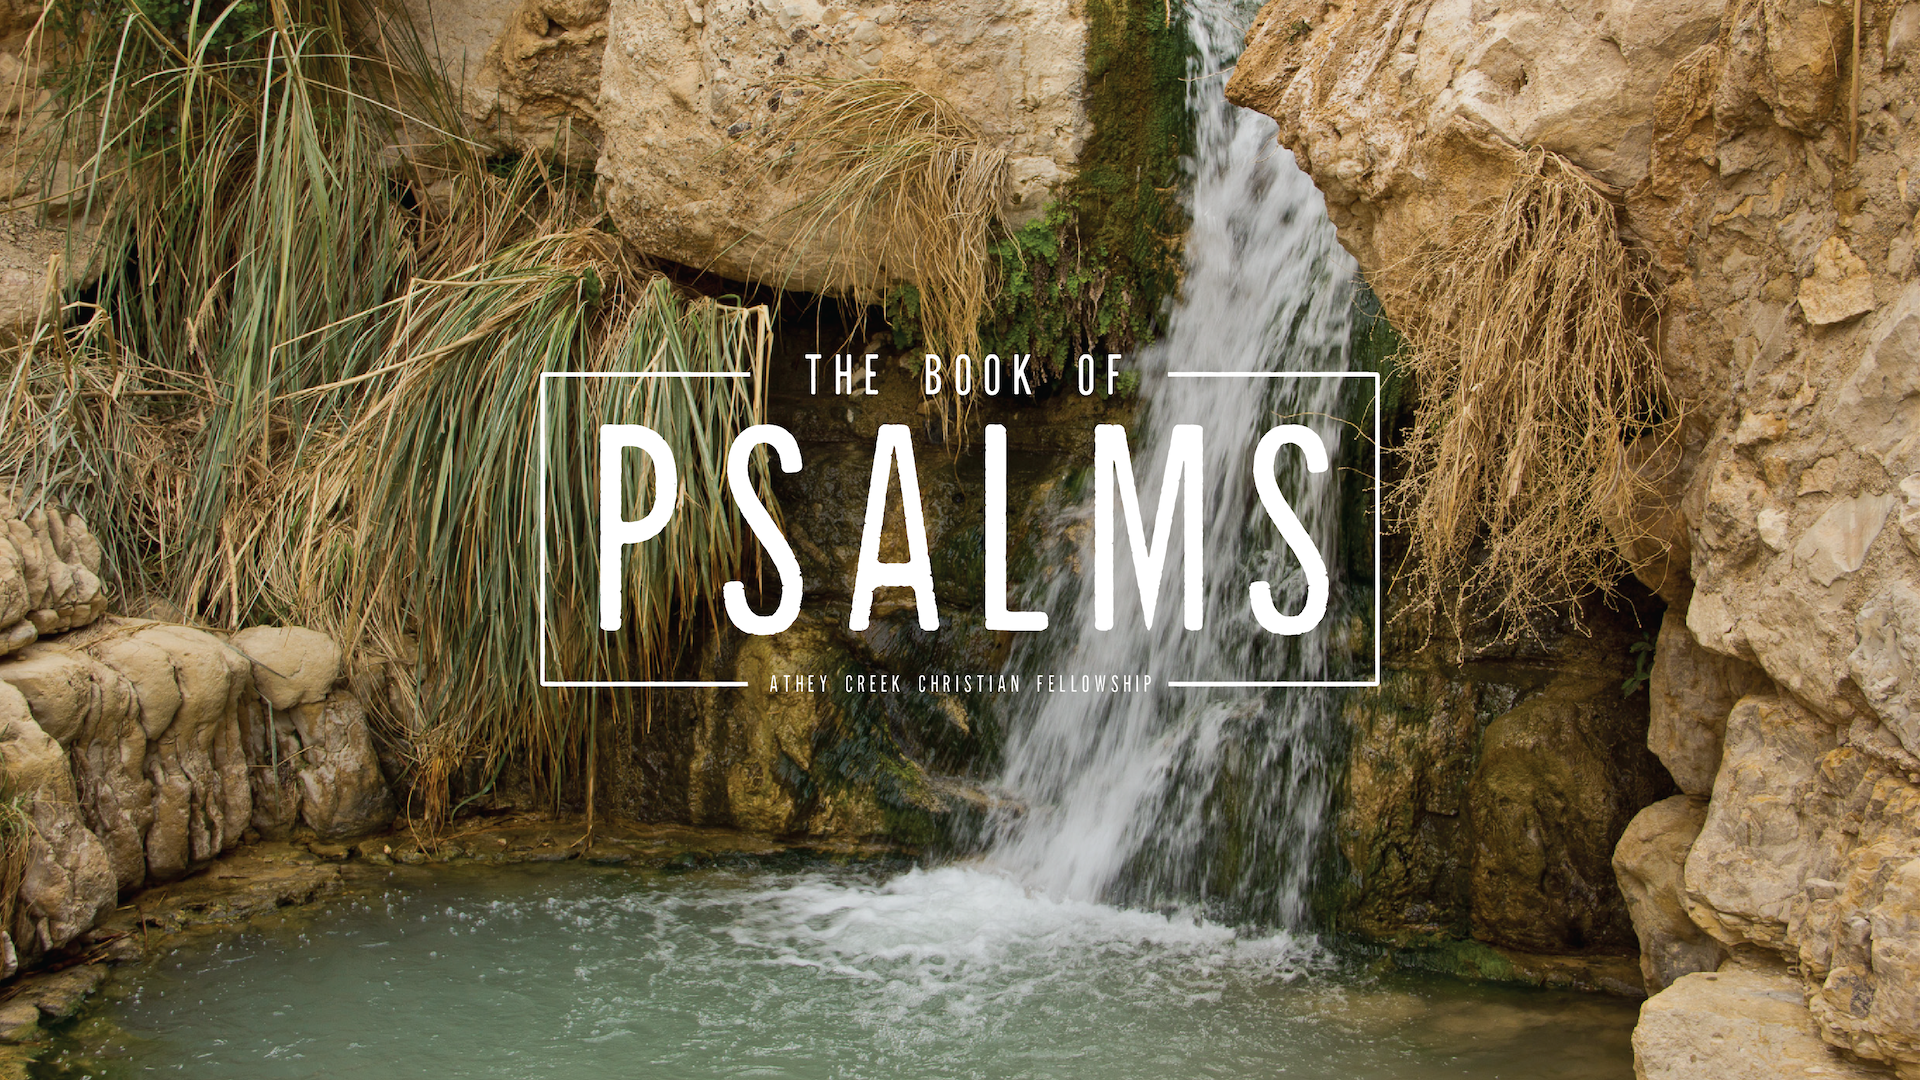 Poster forThrough the Bible (Psalms 56-60)